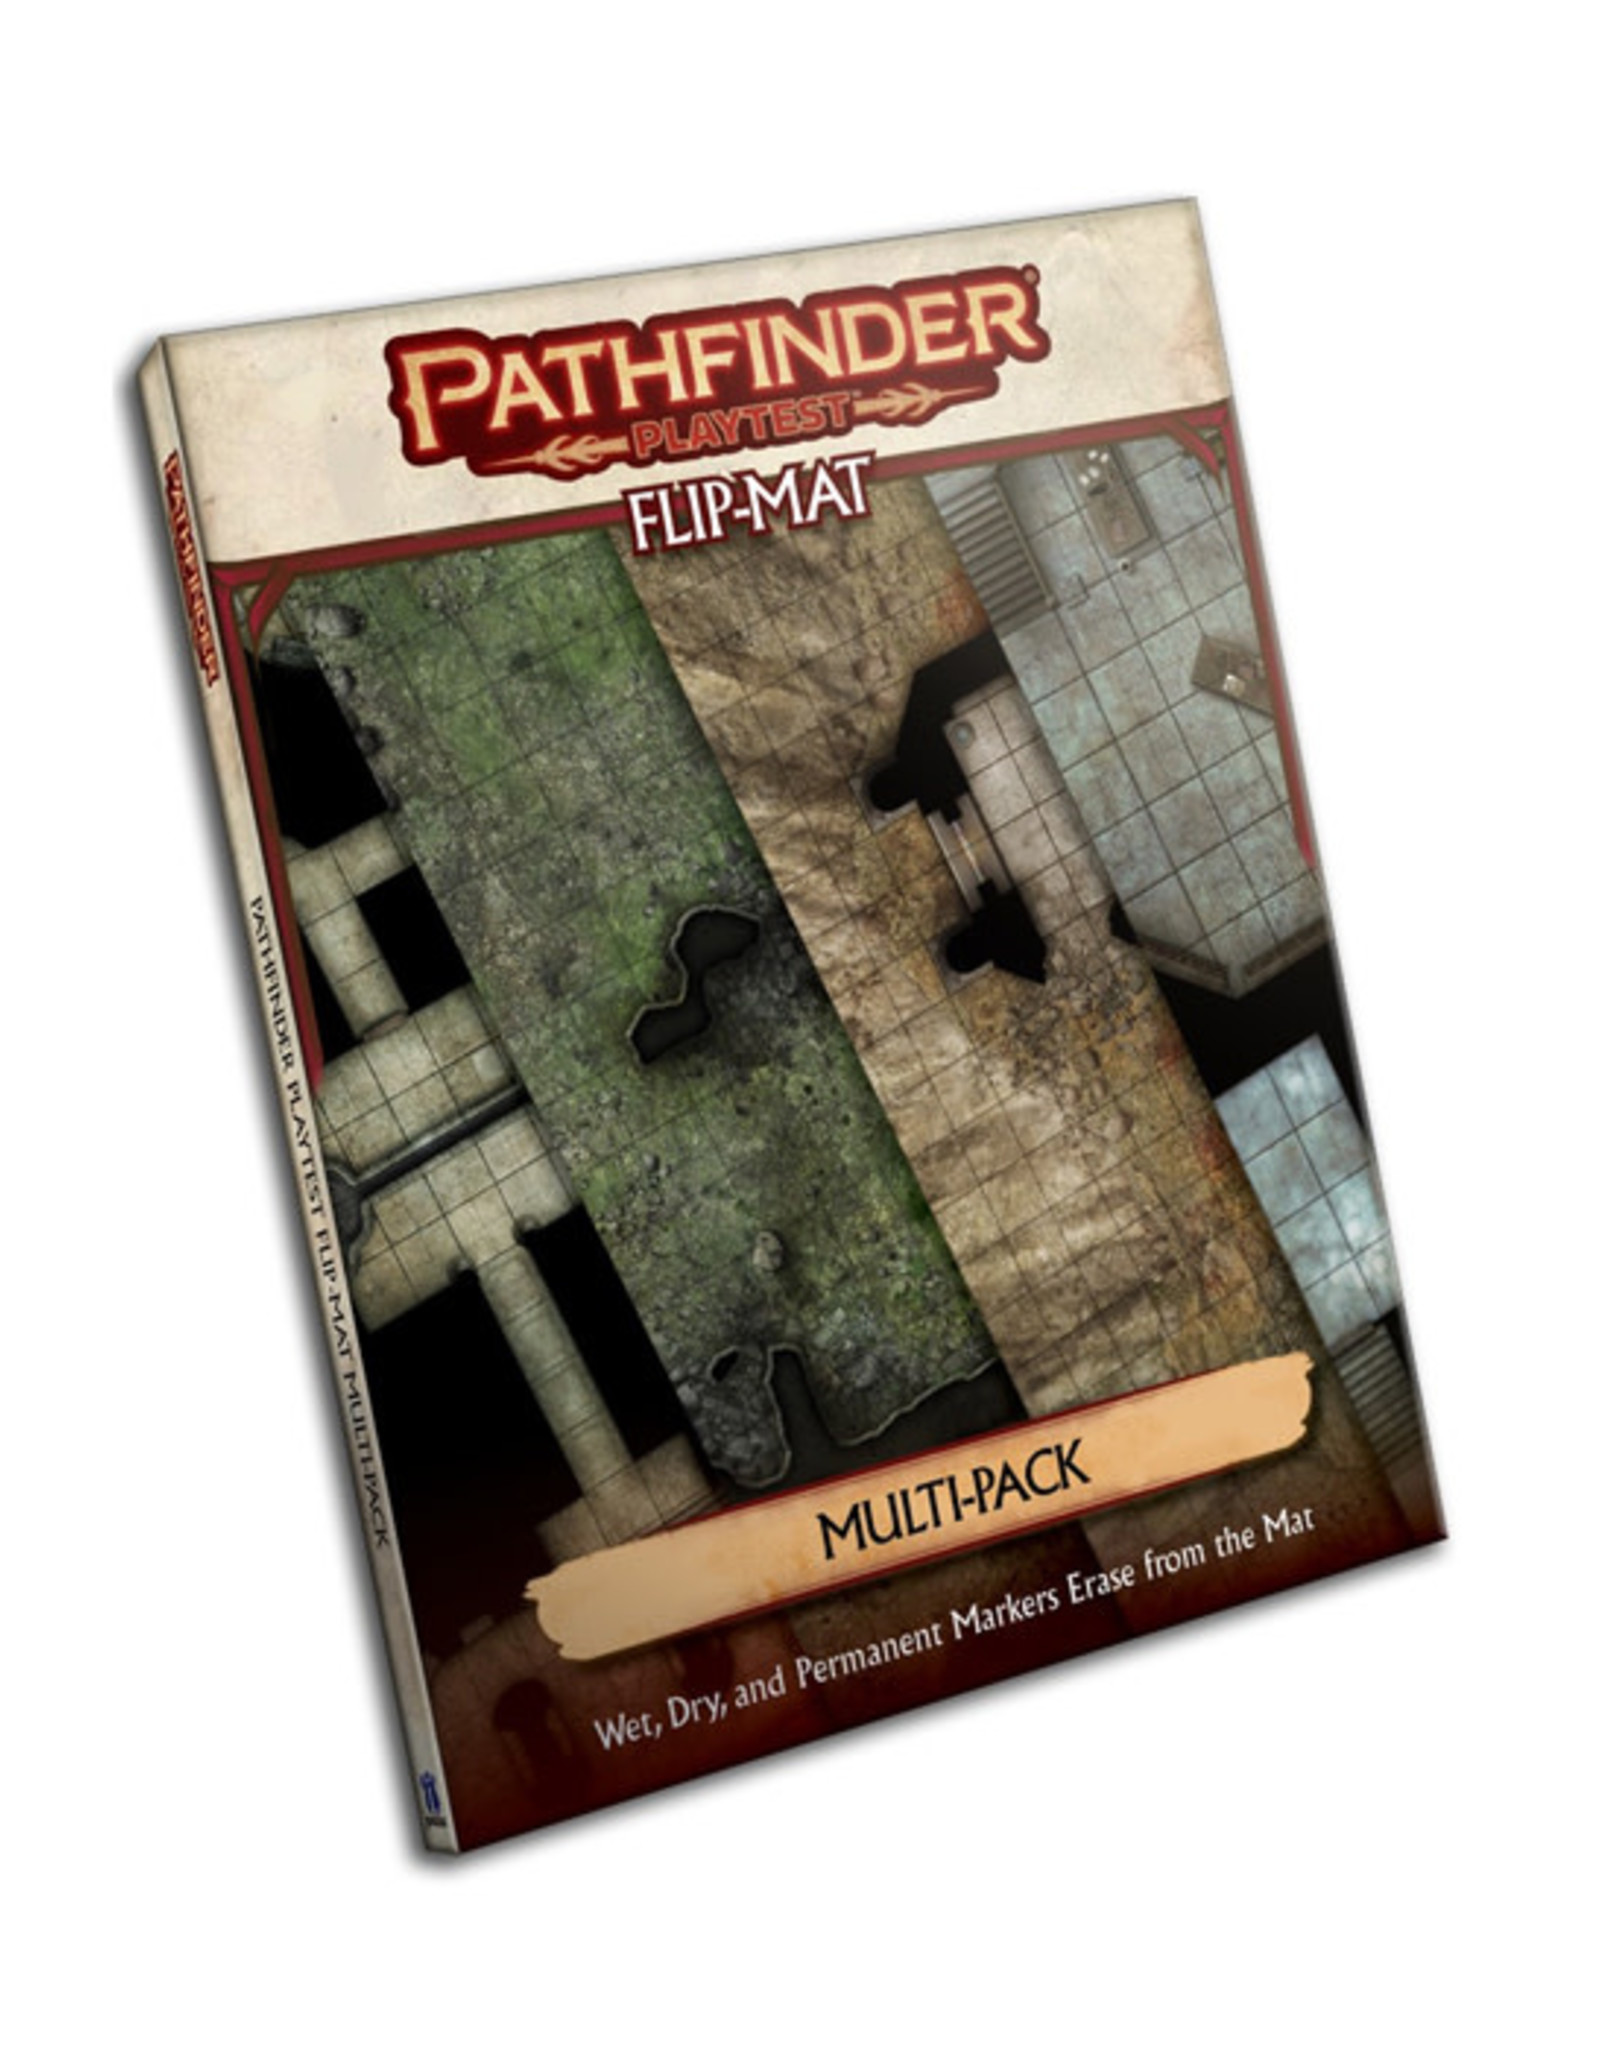 Pathfinder Pathfinder: 2nd Edition - Playtest - Flip-Mat - Multi-Pack